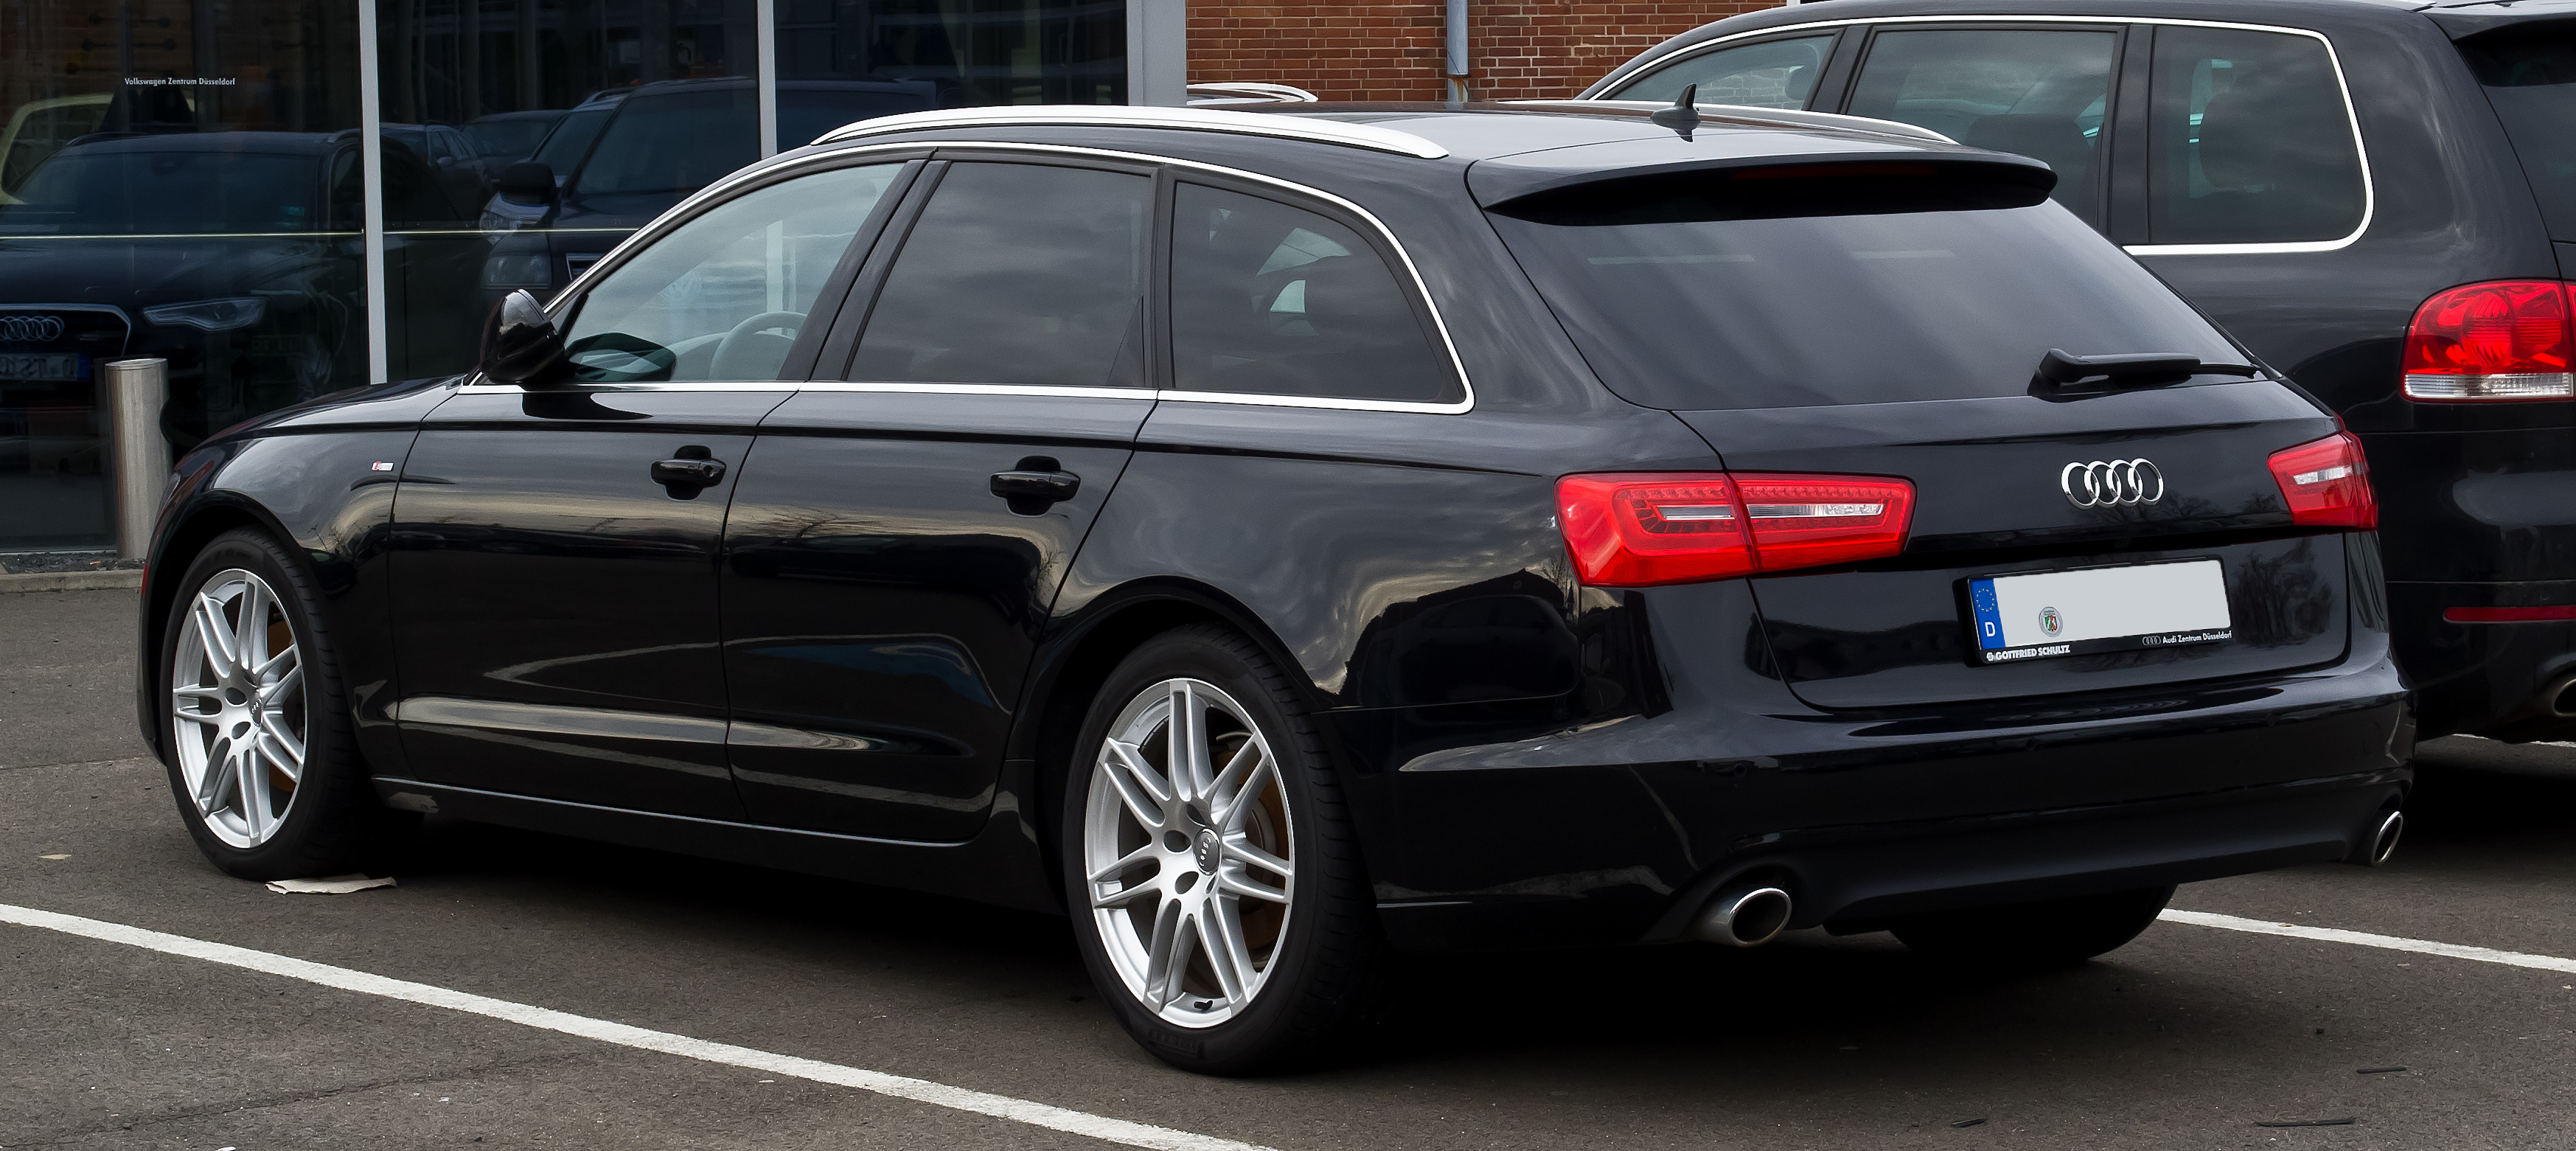 2014 audi a6 avant c7 pictures information and specs. Black Bedroom Furniture Sets. Home Design Ideas